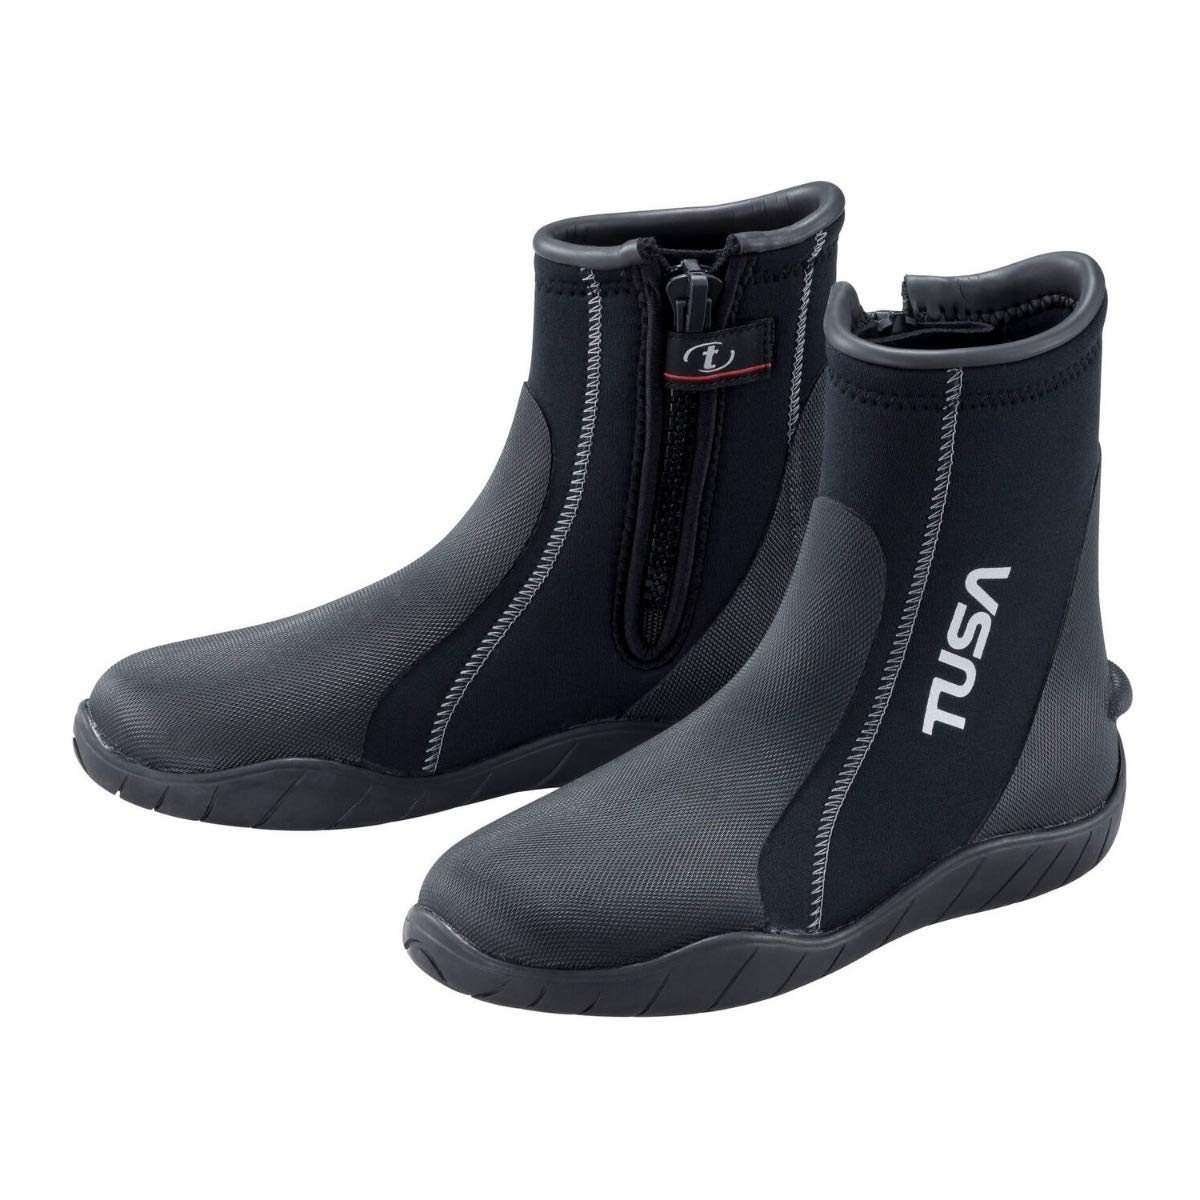 TUSA DB-0101 Imprex 5mm Dive Boots (Mens 5 / Womens 6)